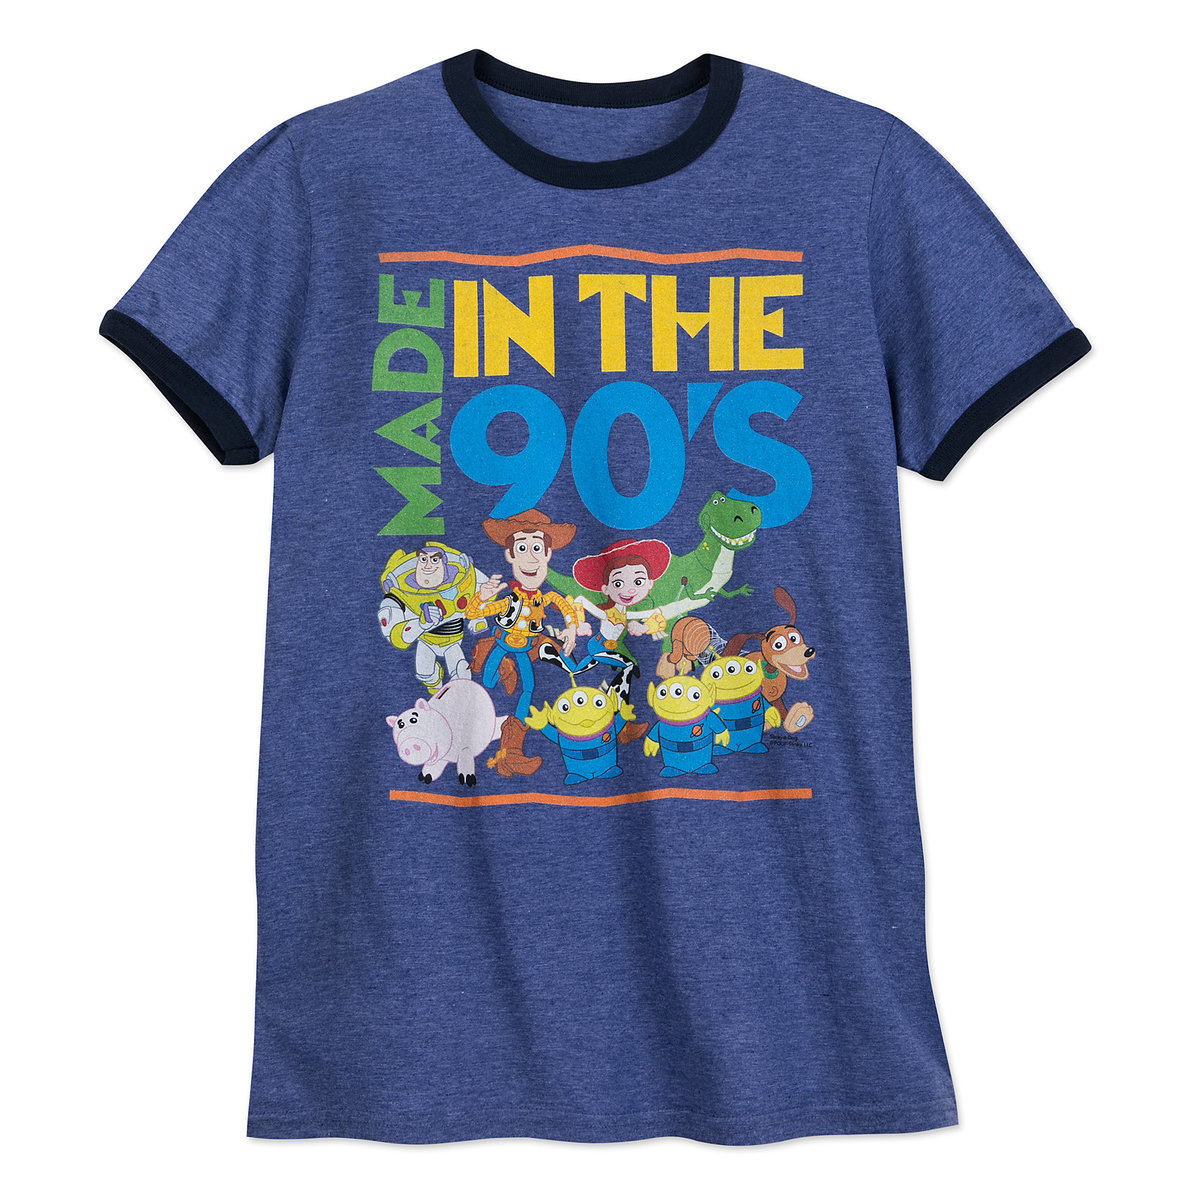 detailed look 93b4a cd4f8 Product Image of Toy Story Ringer T-Shirt for Adults   1